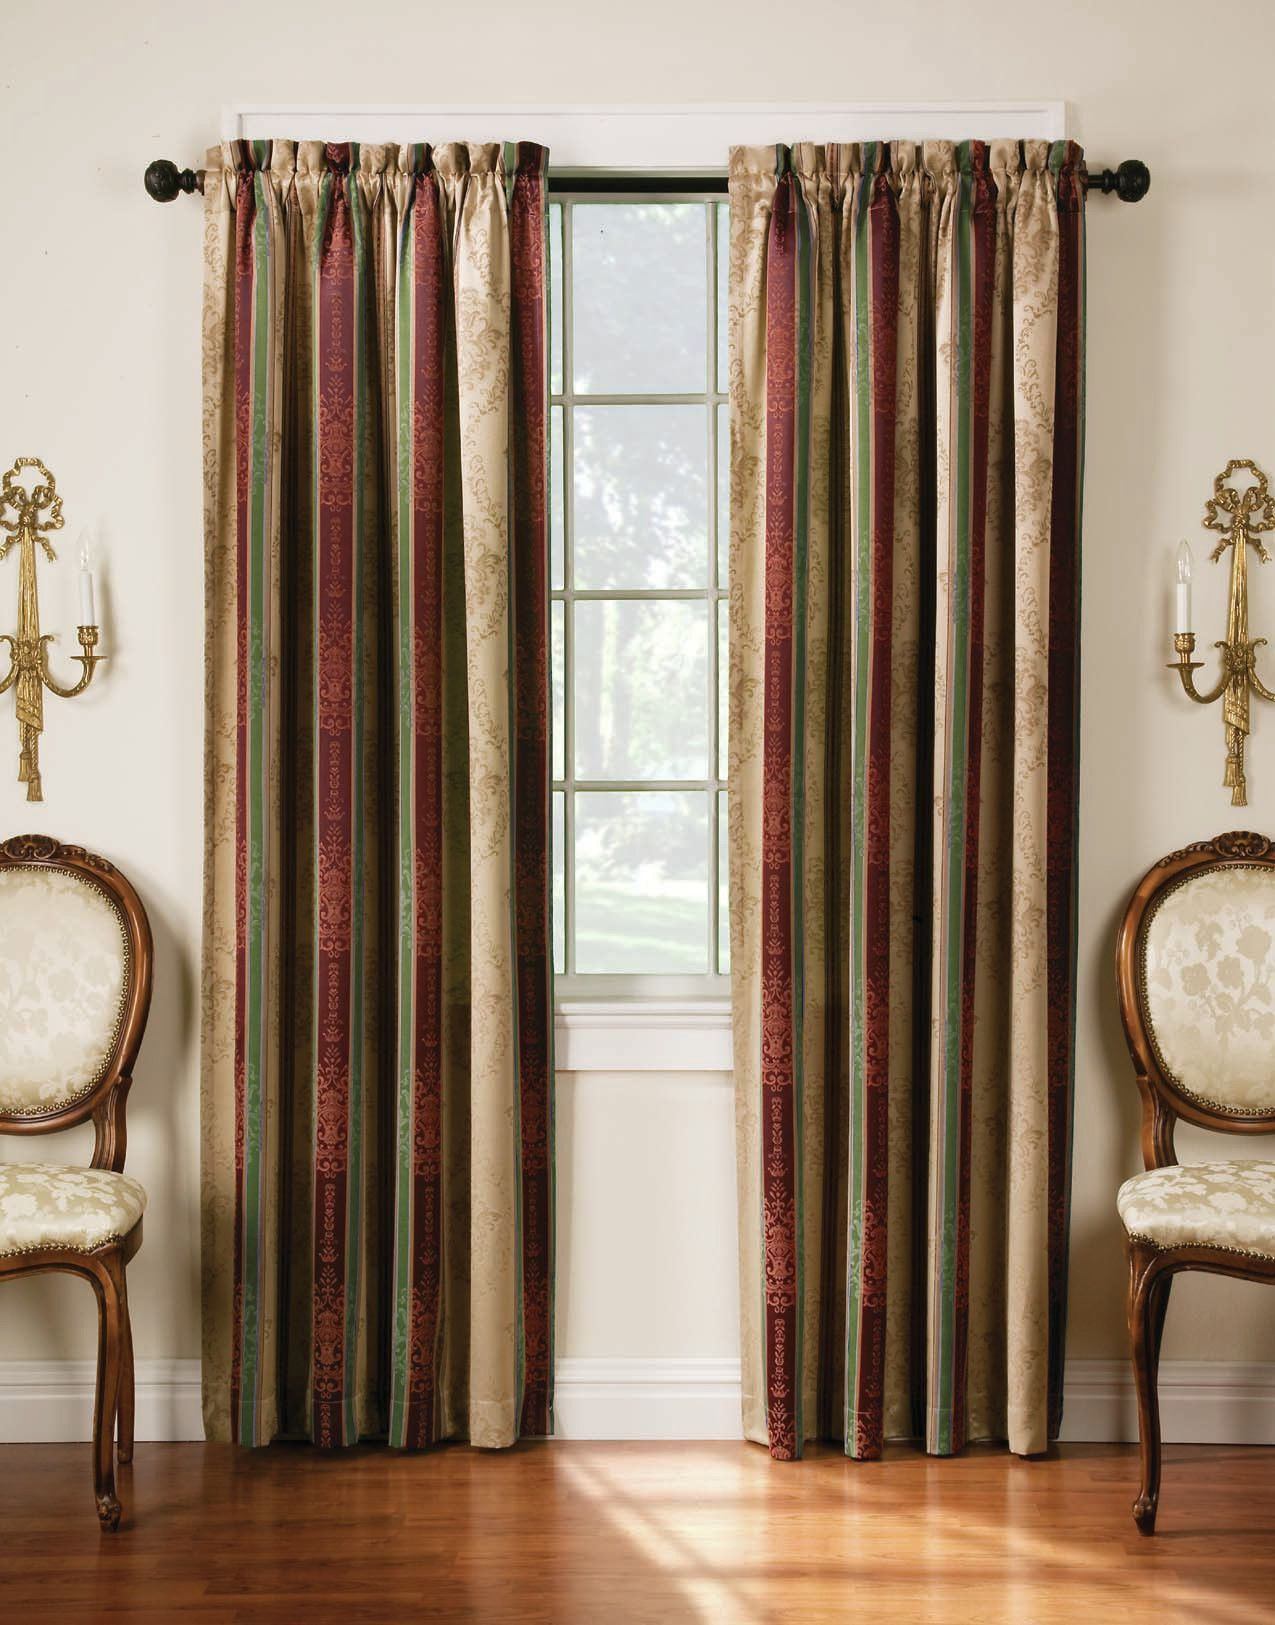 wayfair window treatments window valances window accents tuscan curtain panel reviews wayfair home decor